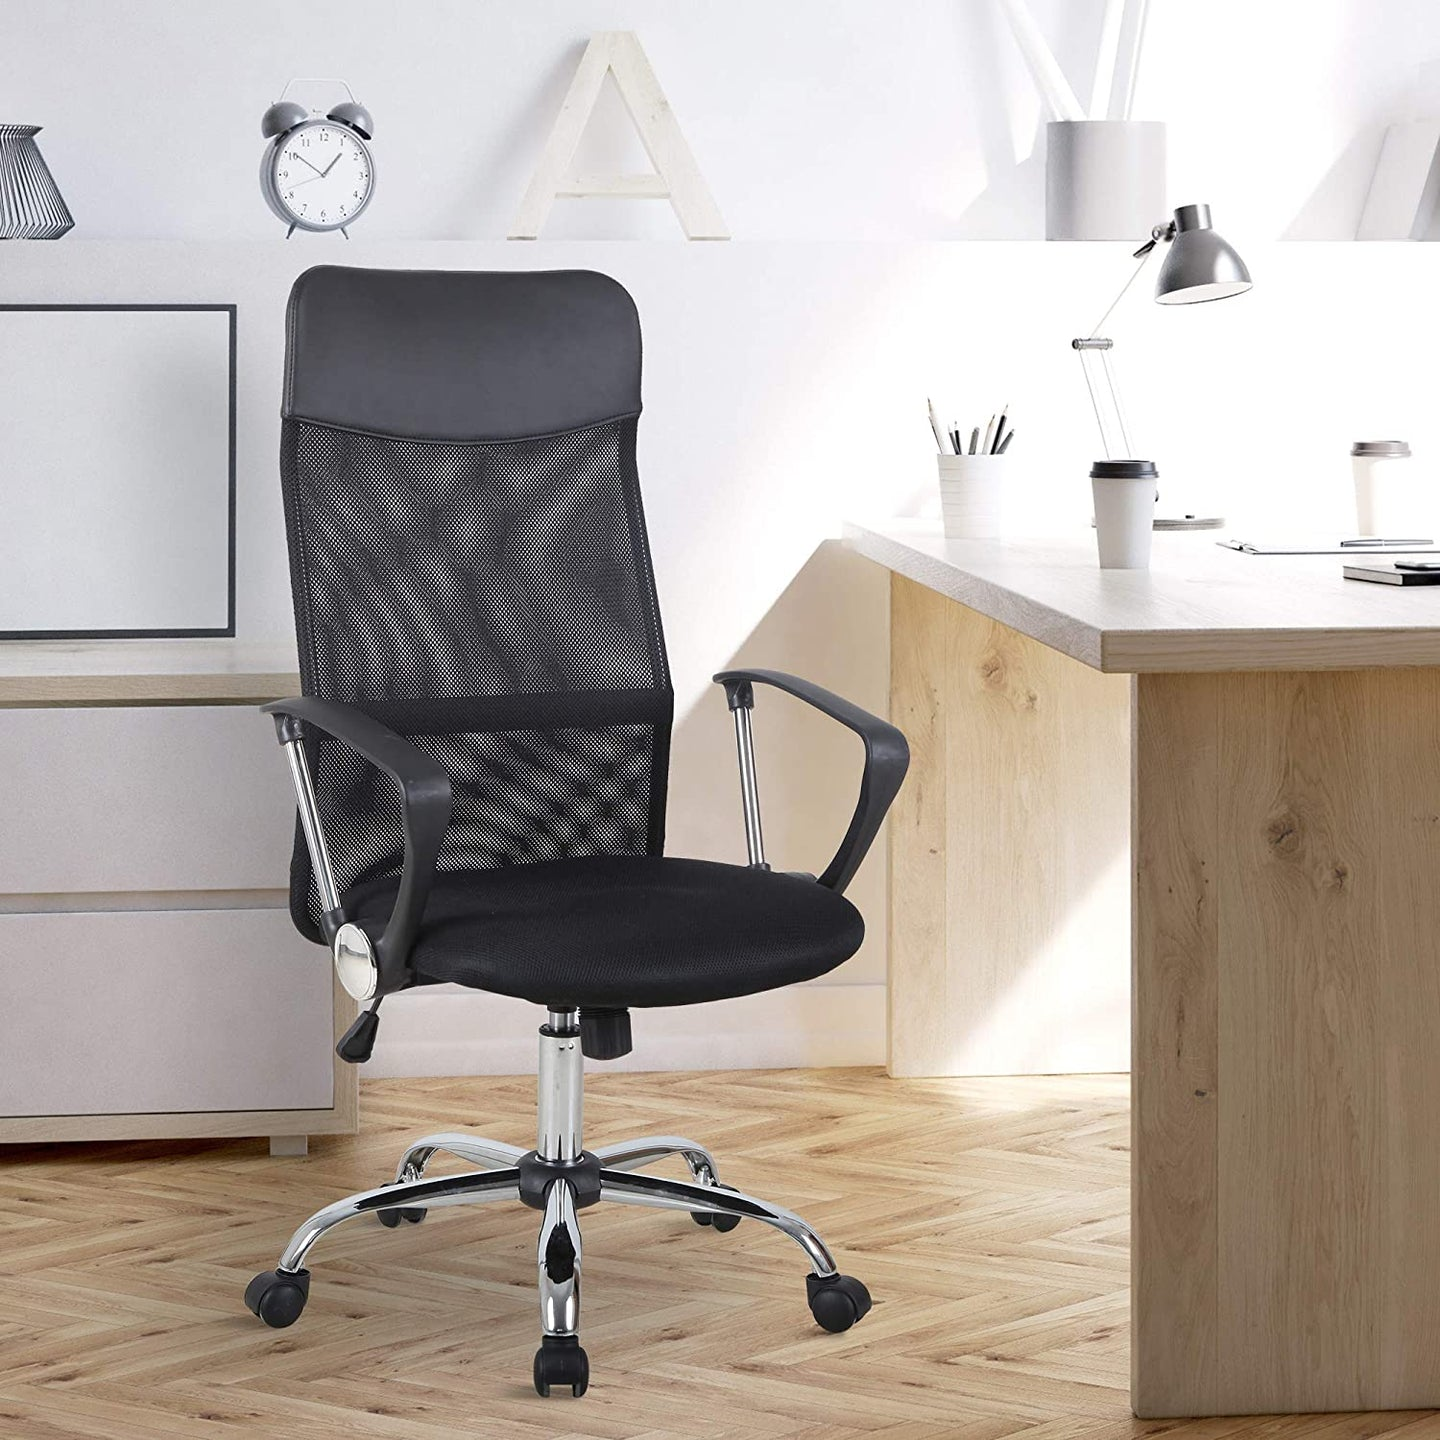 HOMCOM Swivel Office Chair-Black